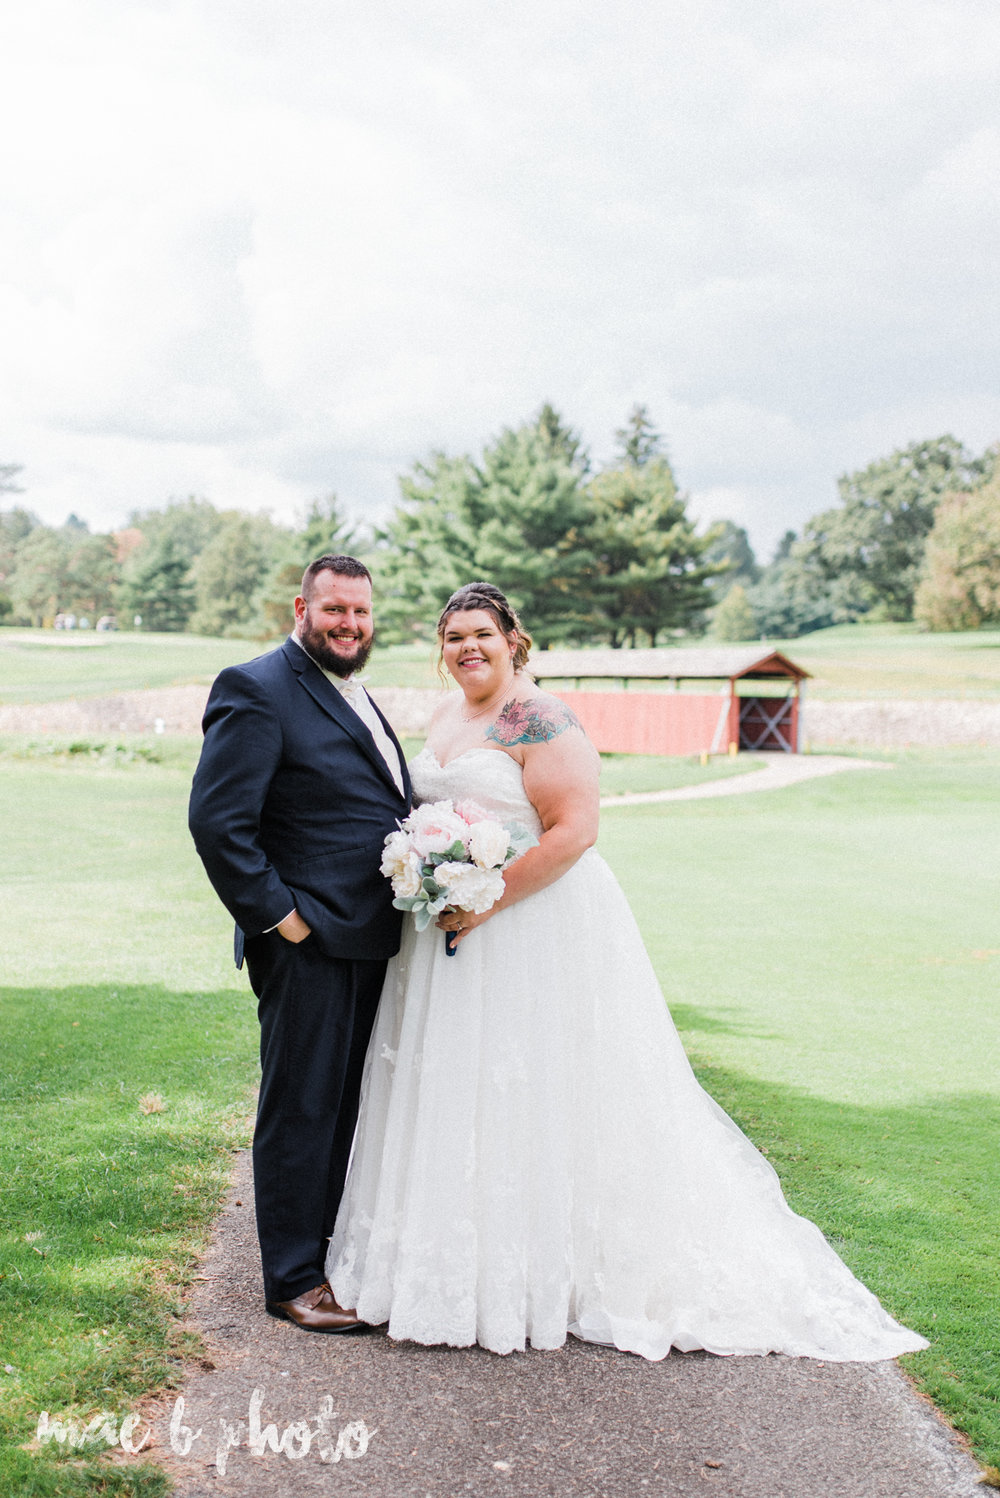 Kristina and ryan's personal vintage glam fall wedding at disalvo's station restaurant and the arnold palmer latrobe country club in latrobe, pa photographed by youngstown wedding photographer mae b photo-34.jpg